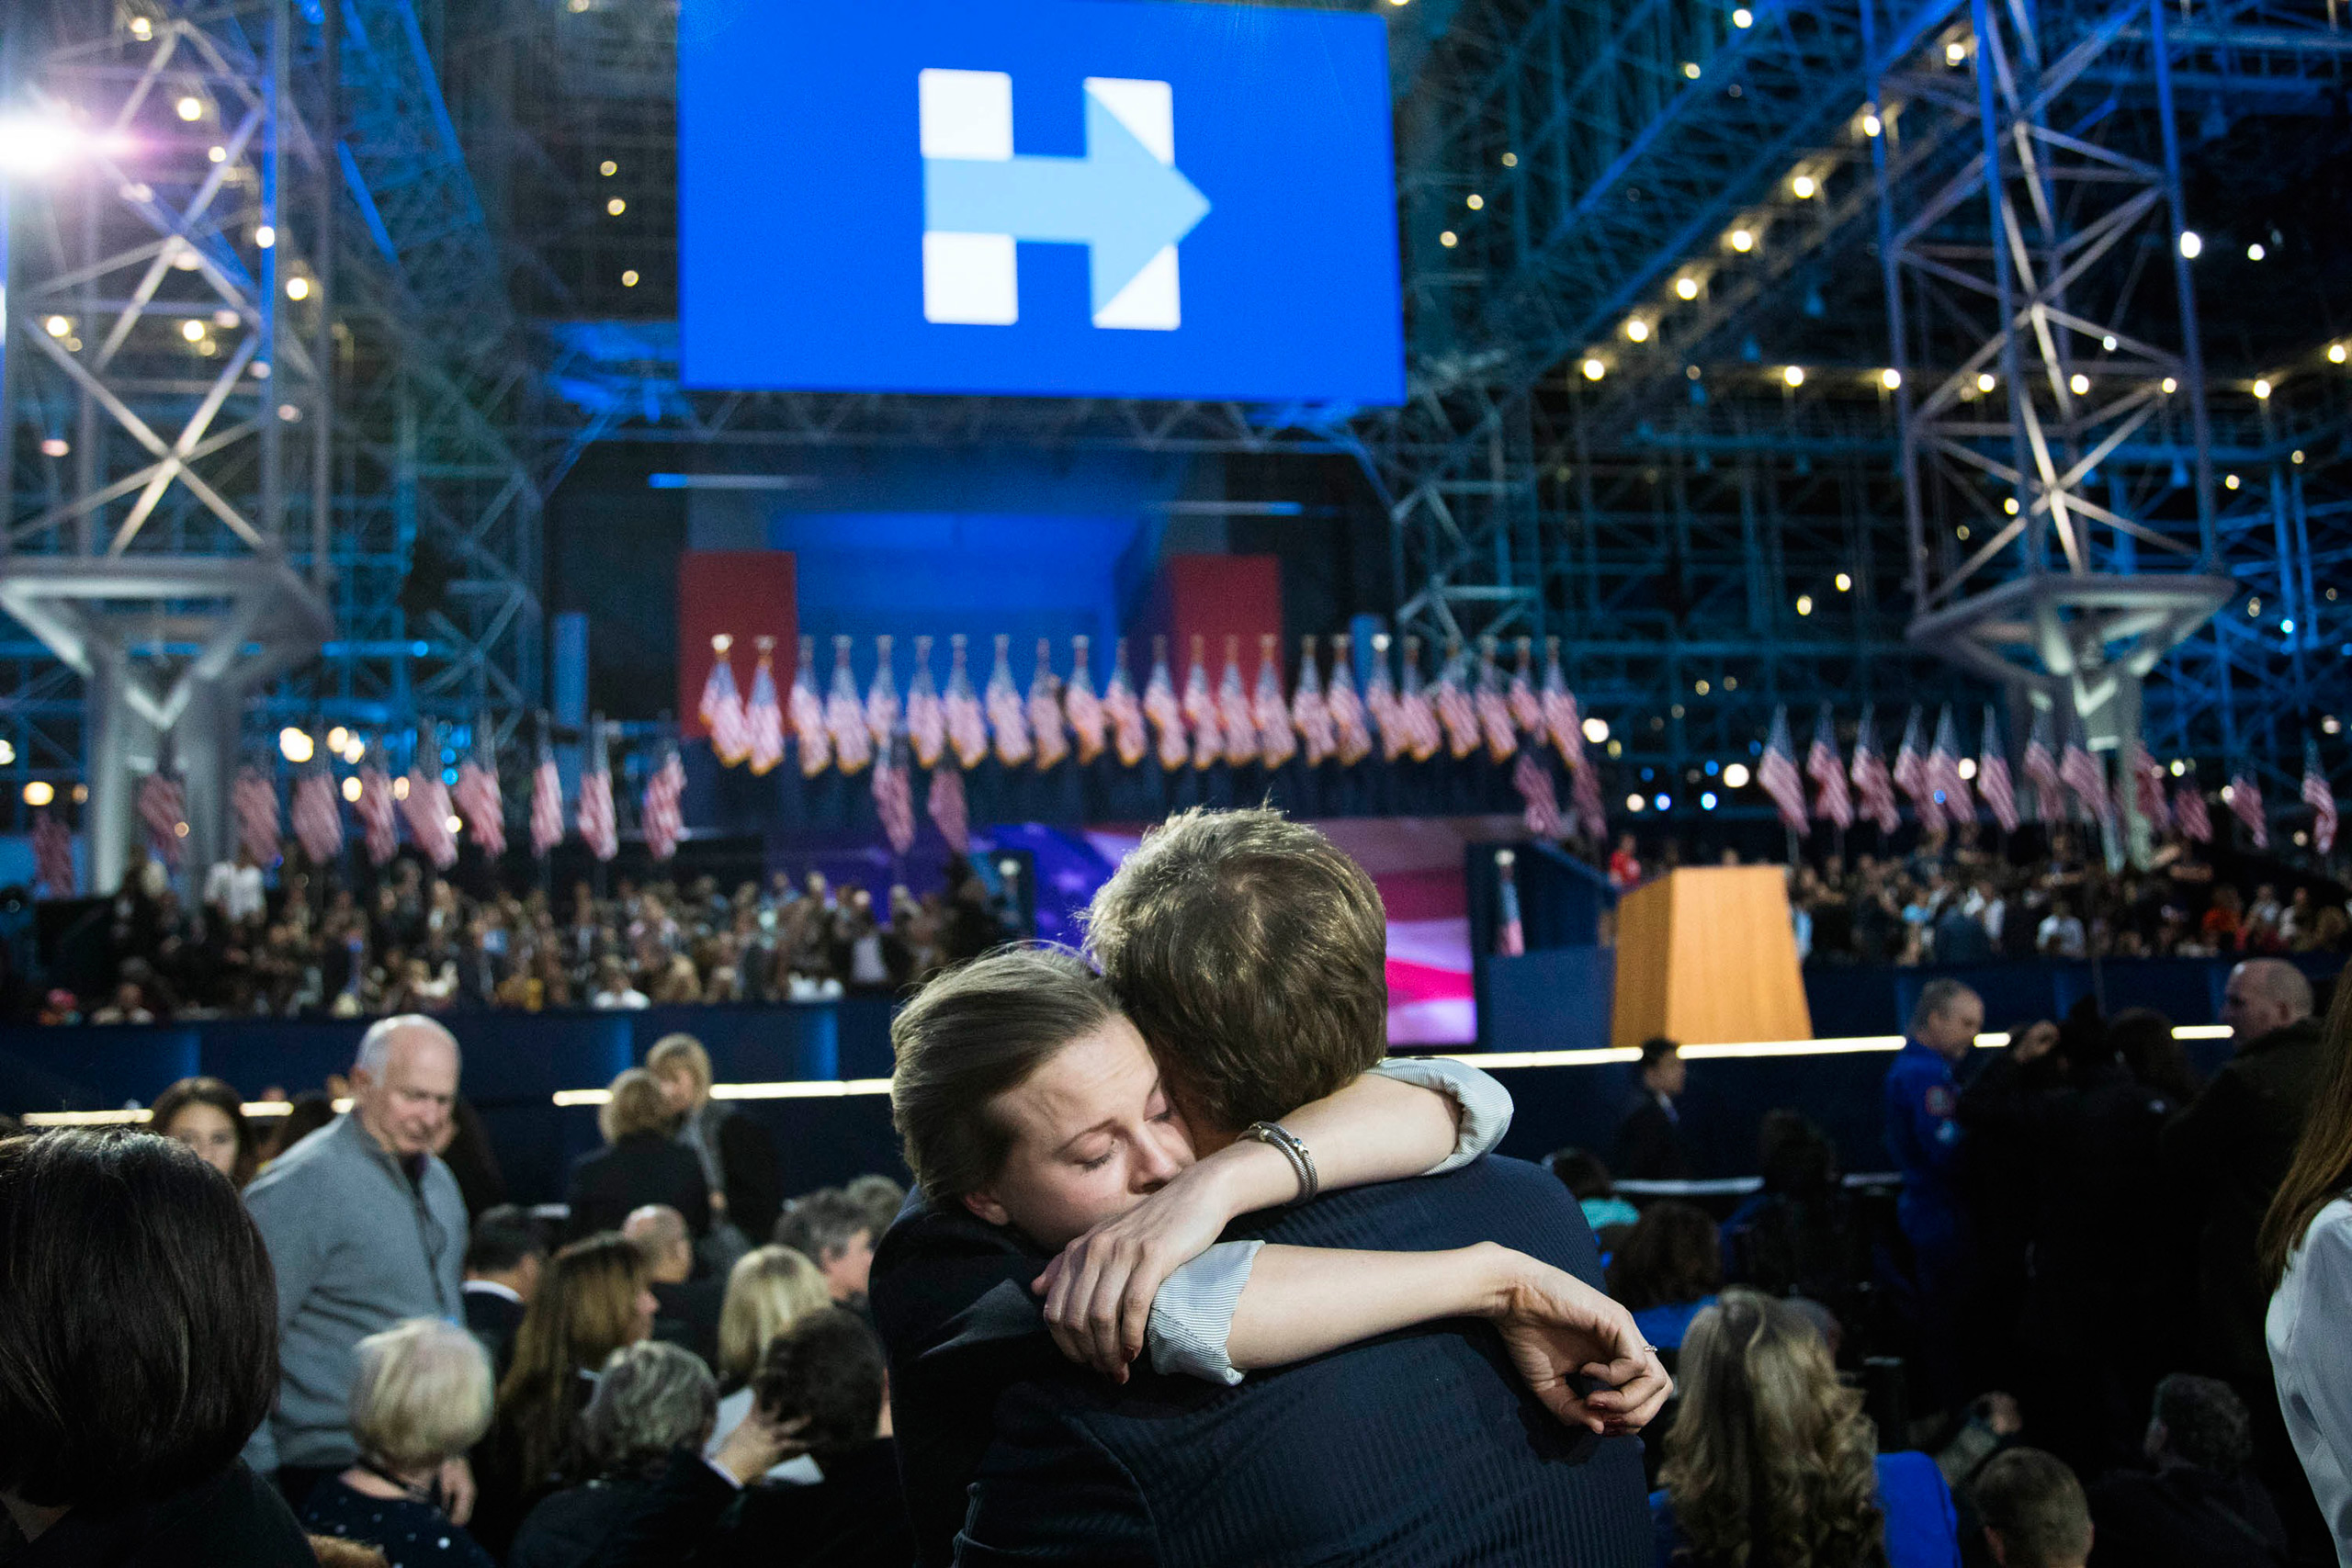 Supporters attend an election night party for Democratic nominee Hillary Clinton on Nov. 8, 2016 at the Javits Center in New York City.From  A Momentous Election Day: The Best Photographs